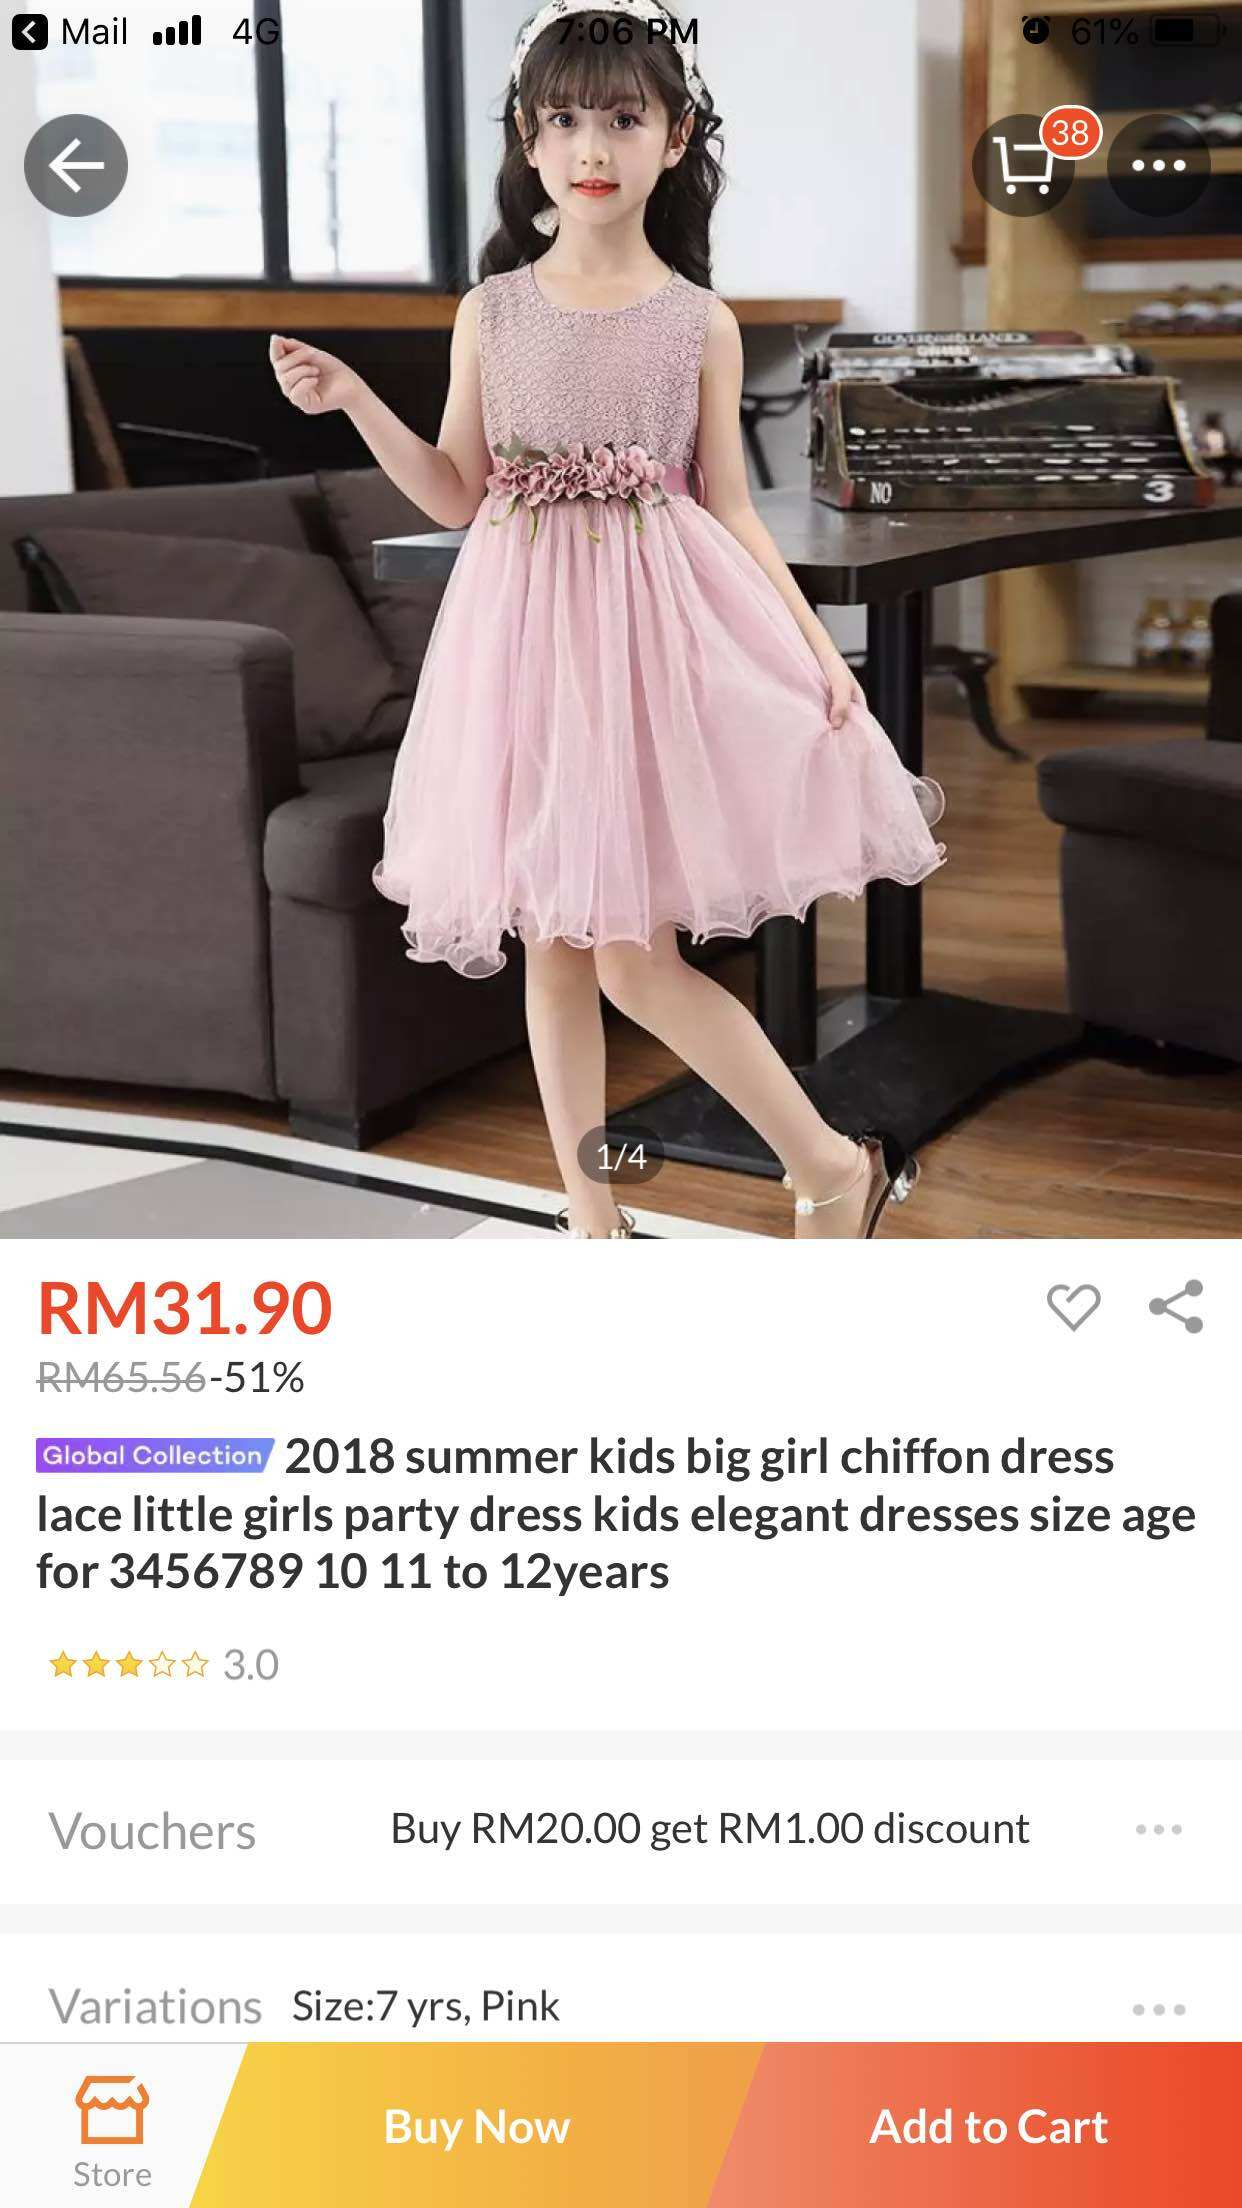 704e8cd19a149 2019 summer kids big girl chiffon dress lace little girls party dress kids  elegant dresses size age for 3456789 10 11 to 12years